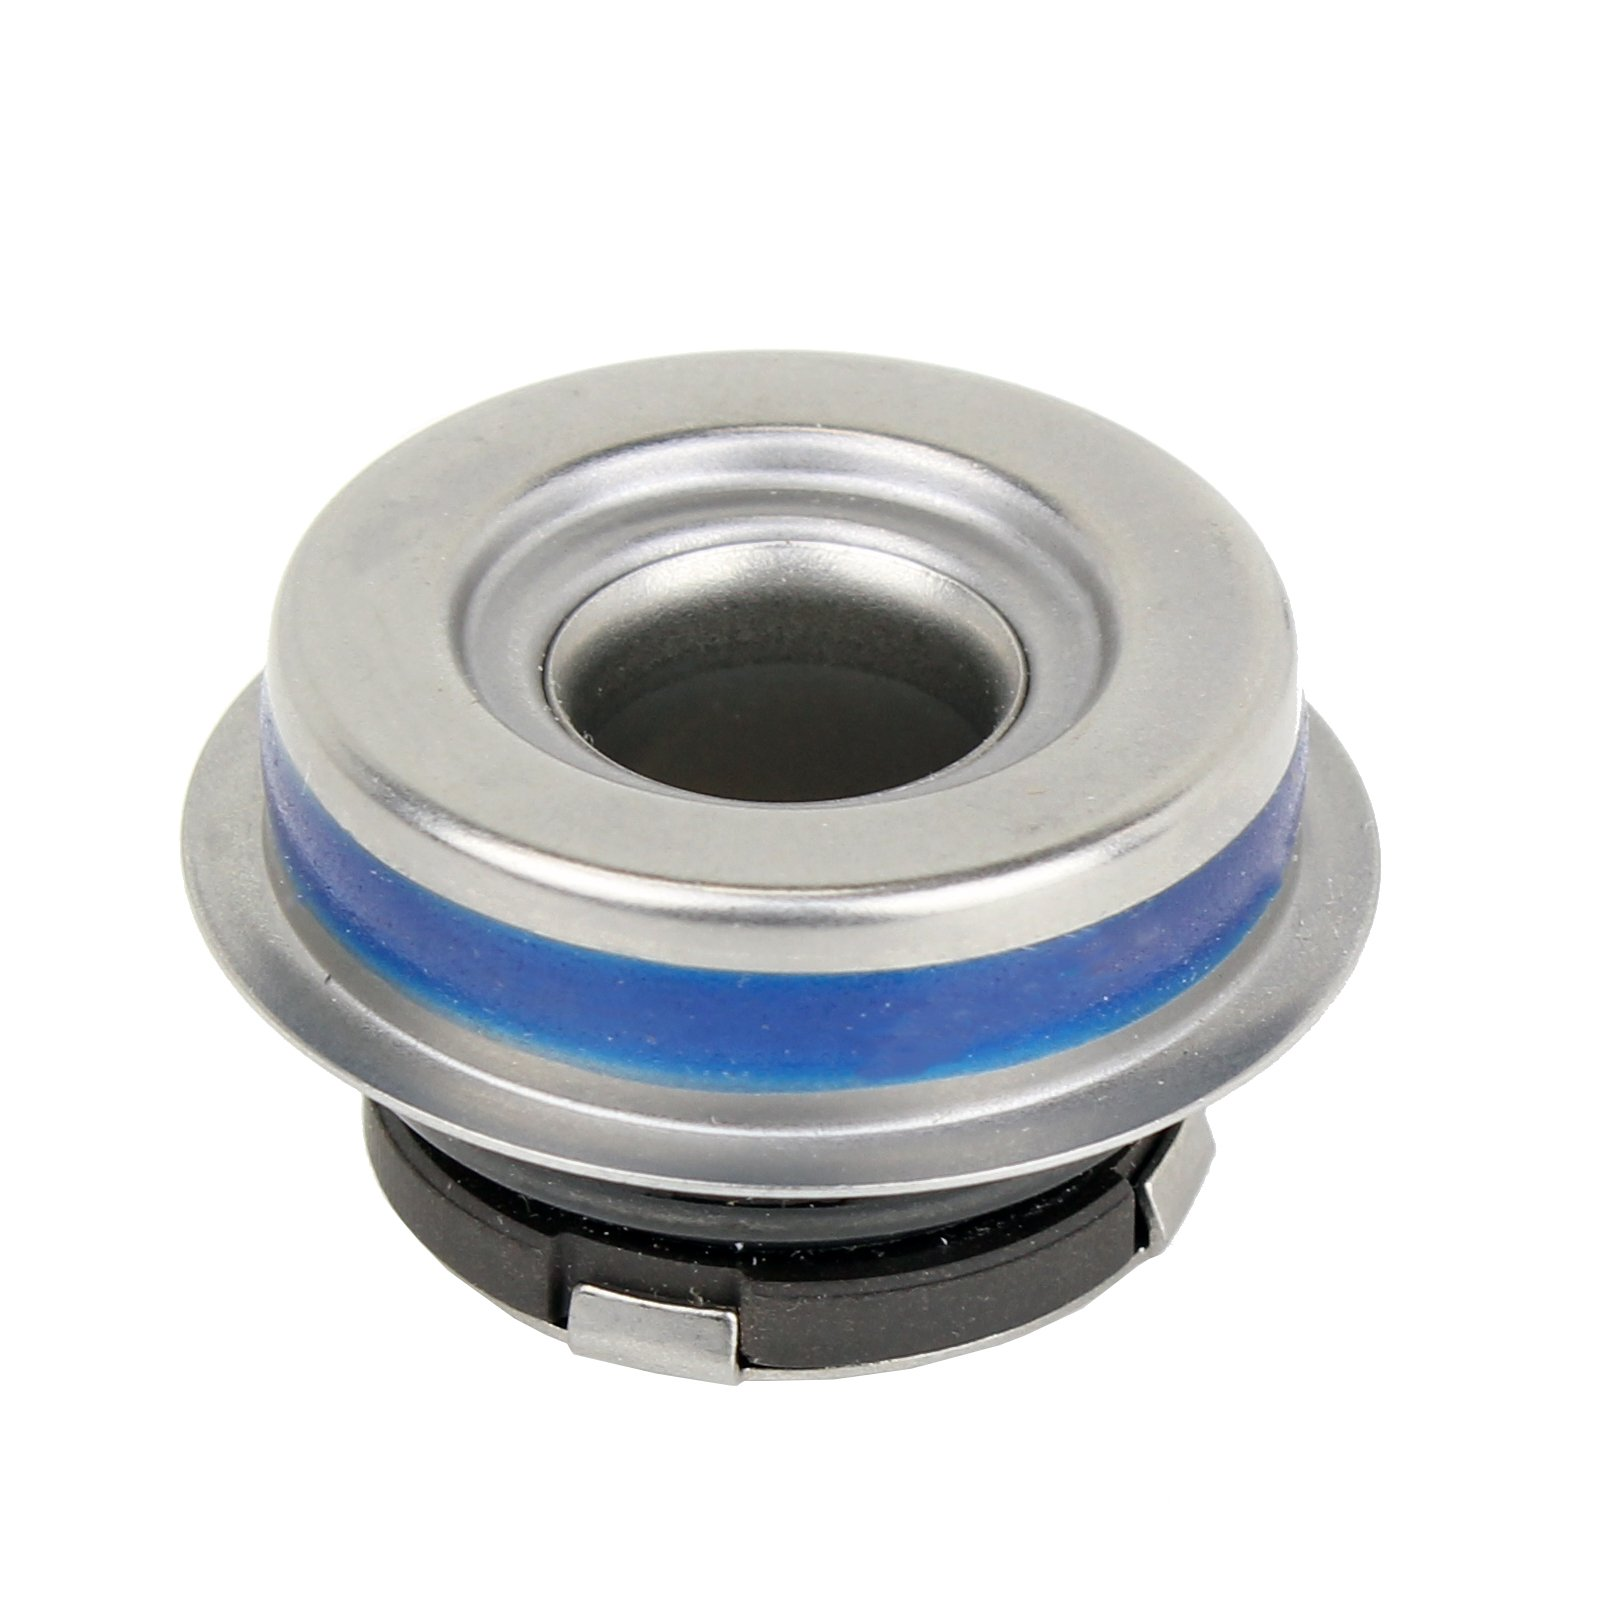 CALTRIC WATER PUMP MECHANICAL SEAL FITS SKI-DOO EXPEDITION 900 LE SE SPORT ACE 2014-2017